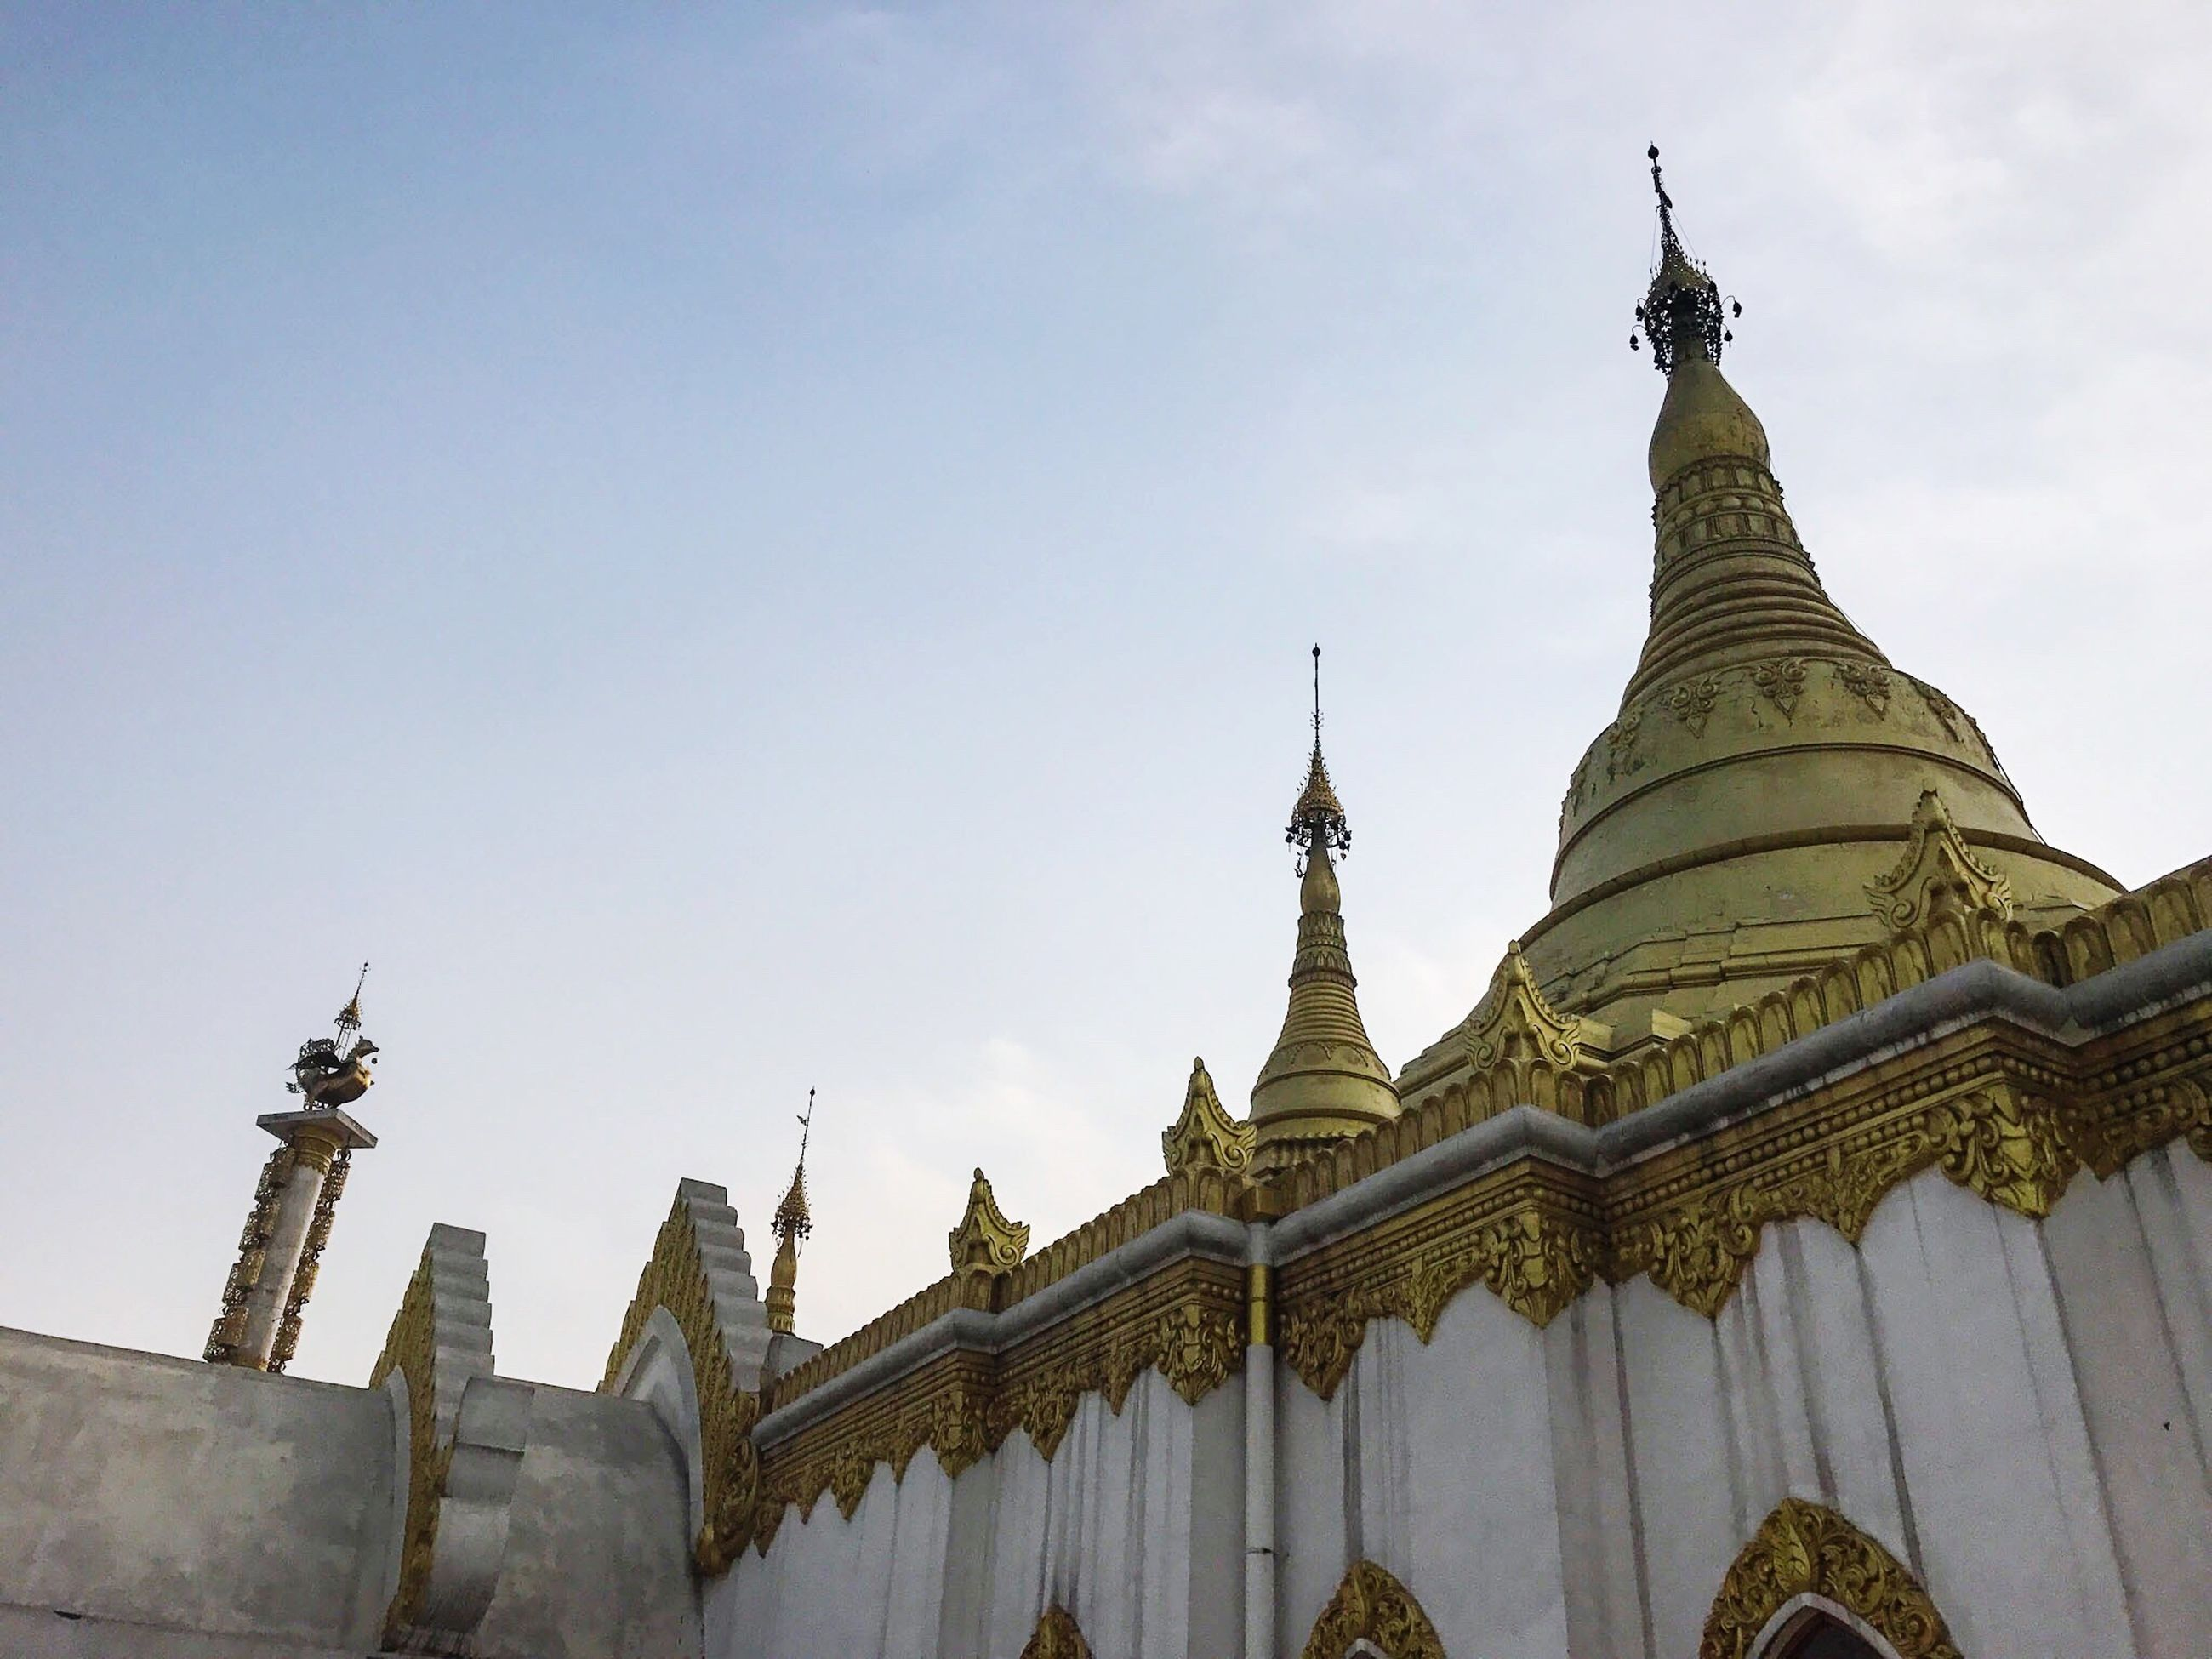 religion, spirituality, place of worship, low angle view, architecture, built structure, gold colored, no people, sky, building exterior, travel destinations, outdoors, gold, day